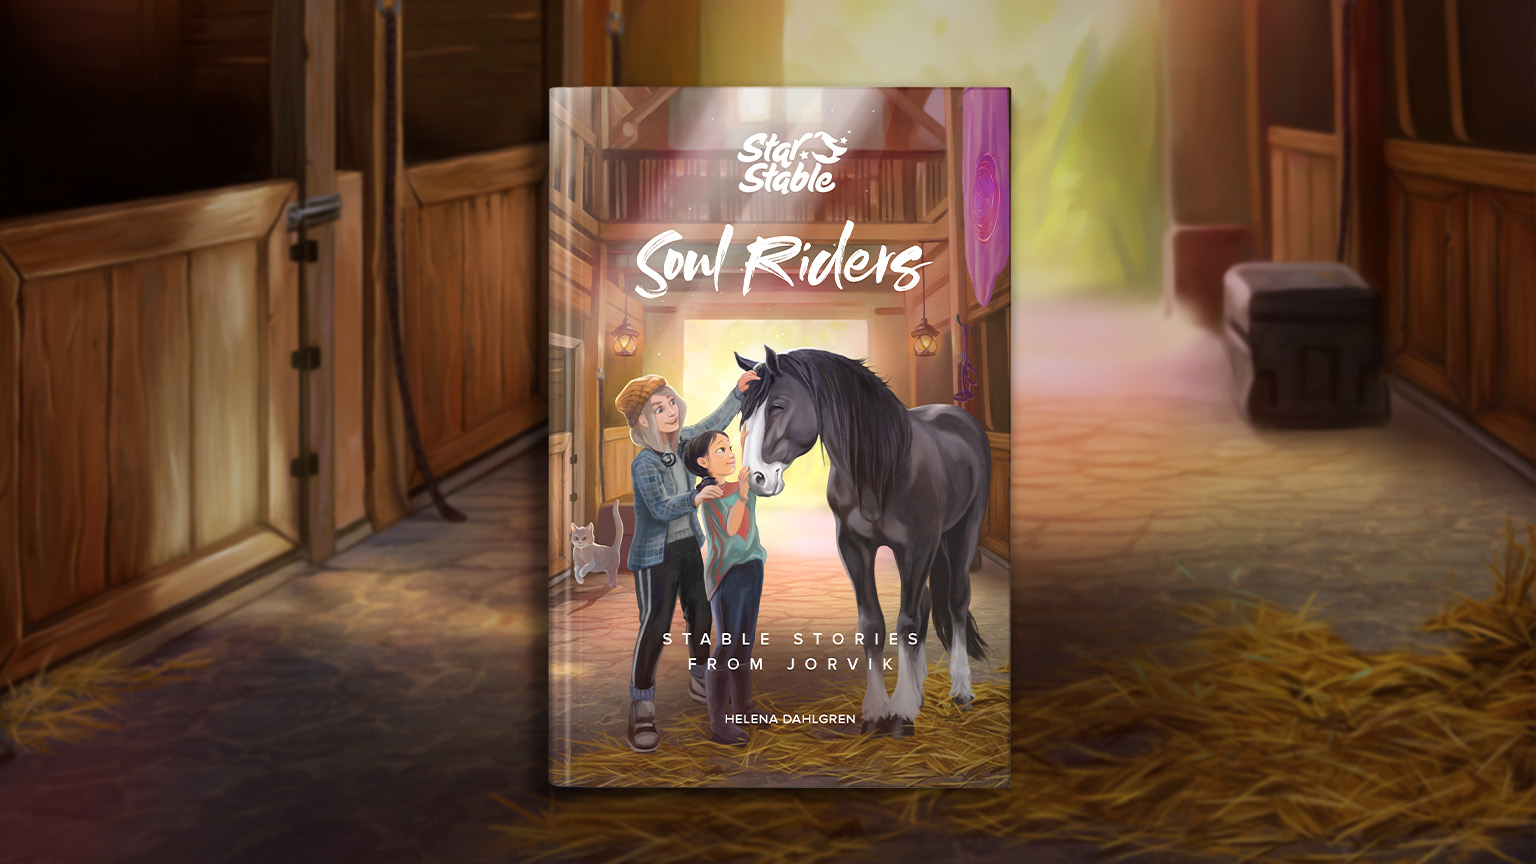 Soul Riders: Stable Stories from Jorvik